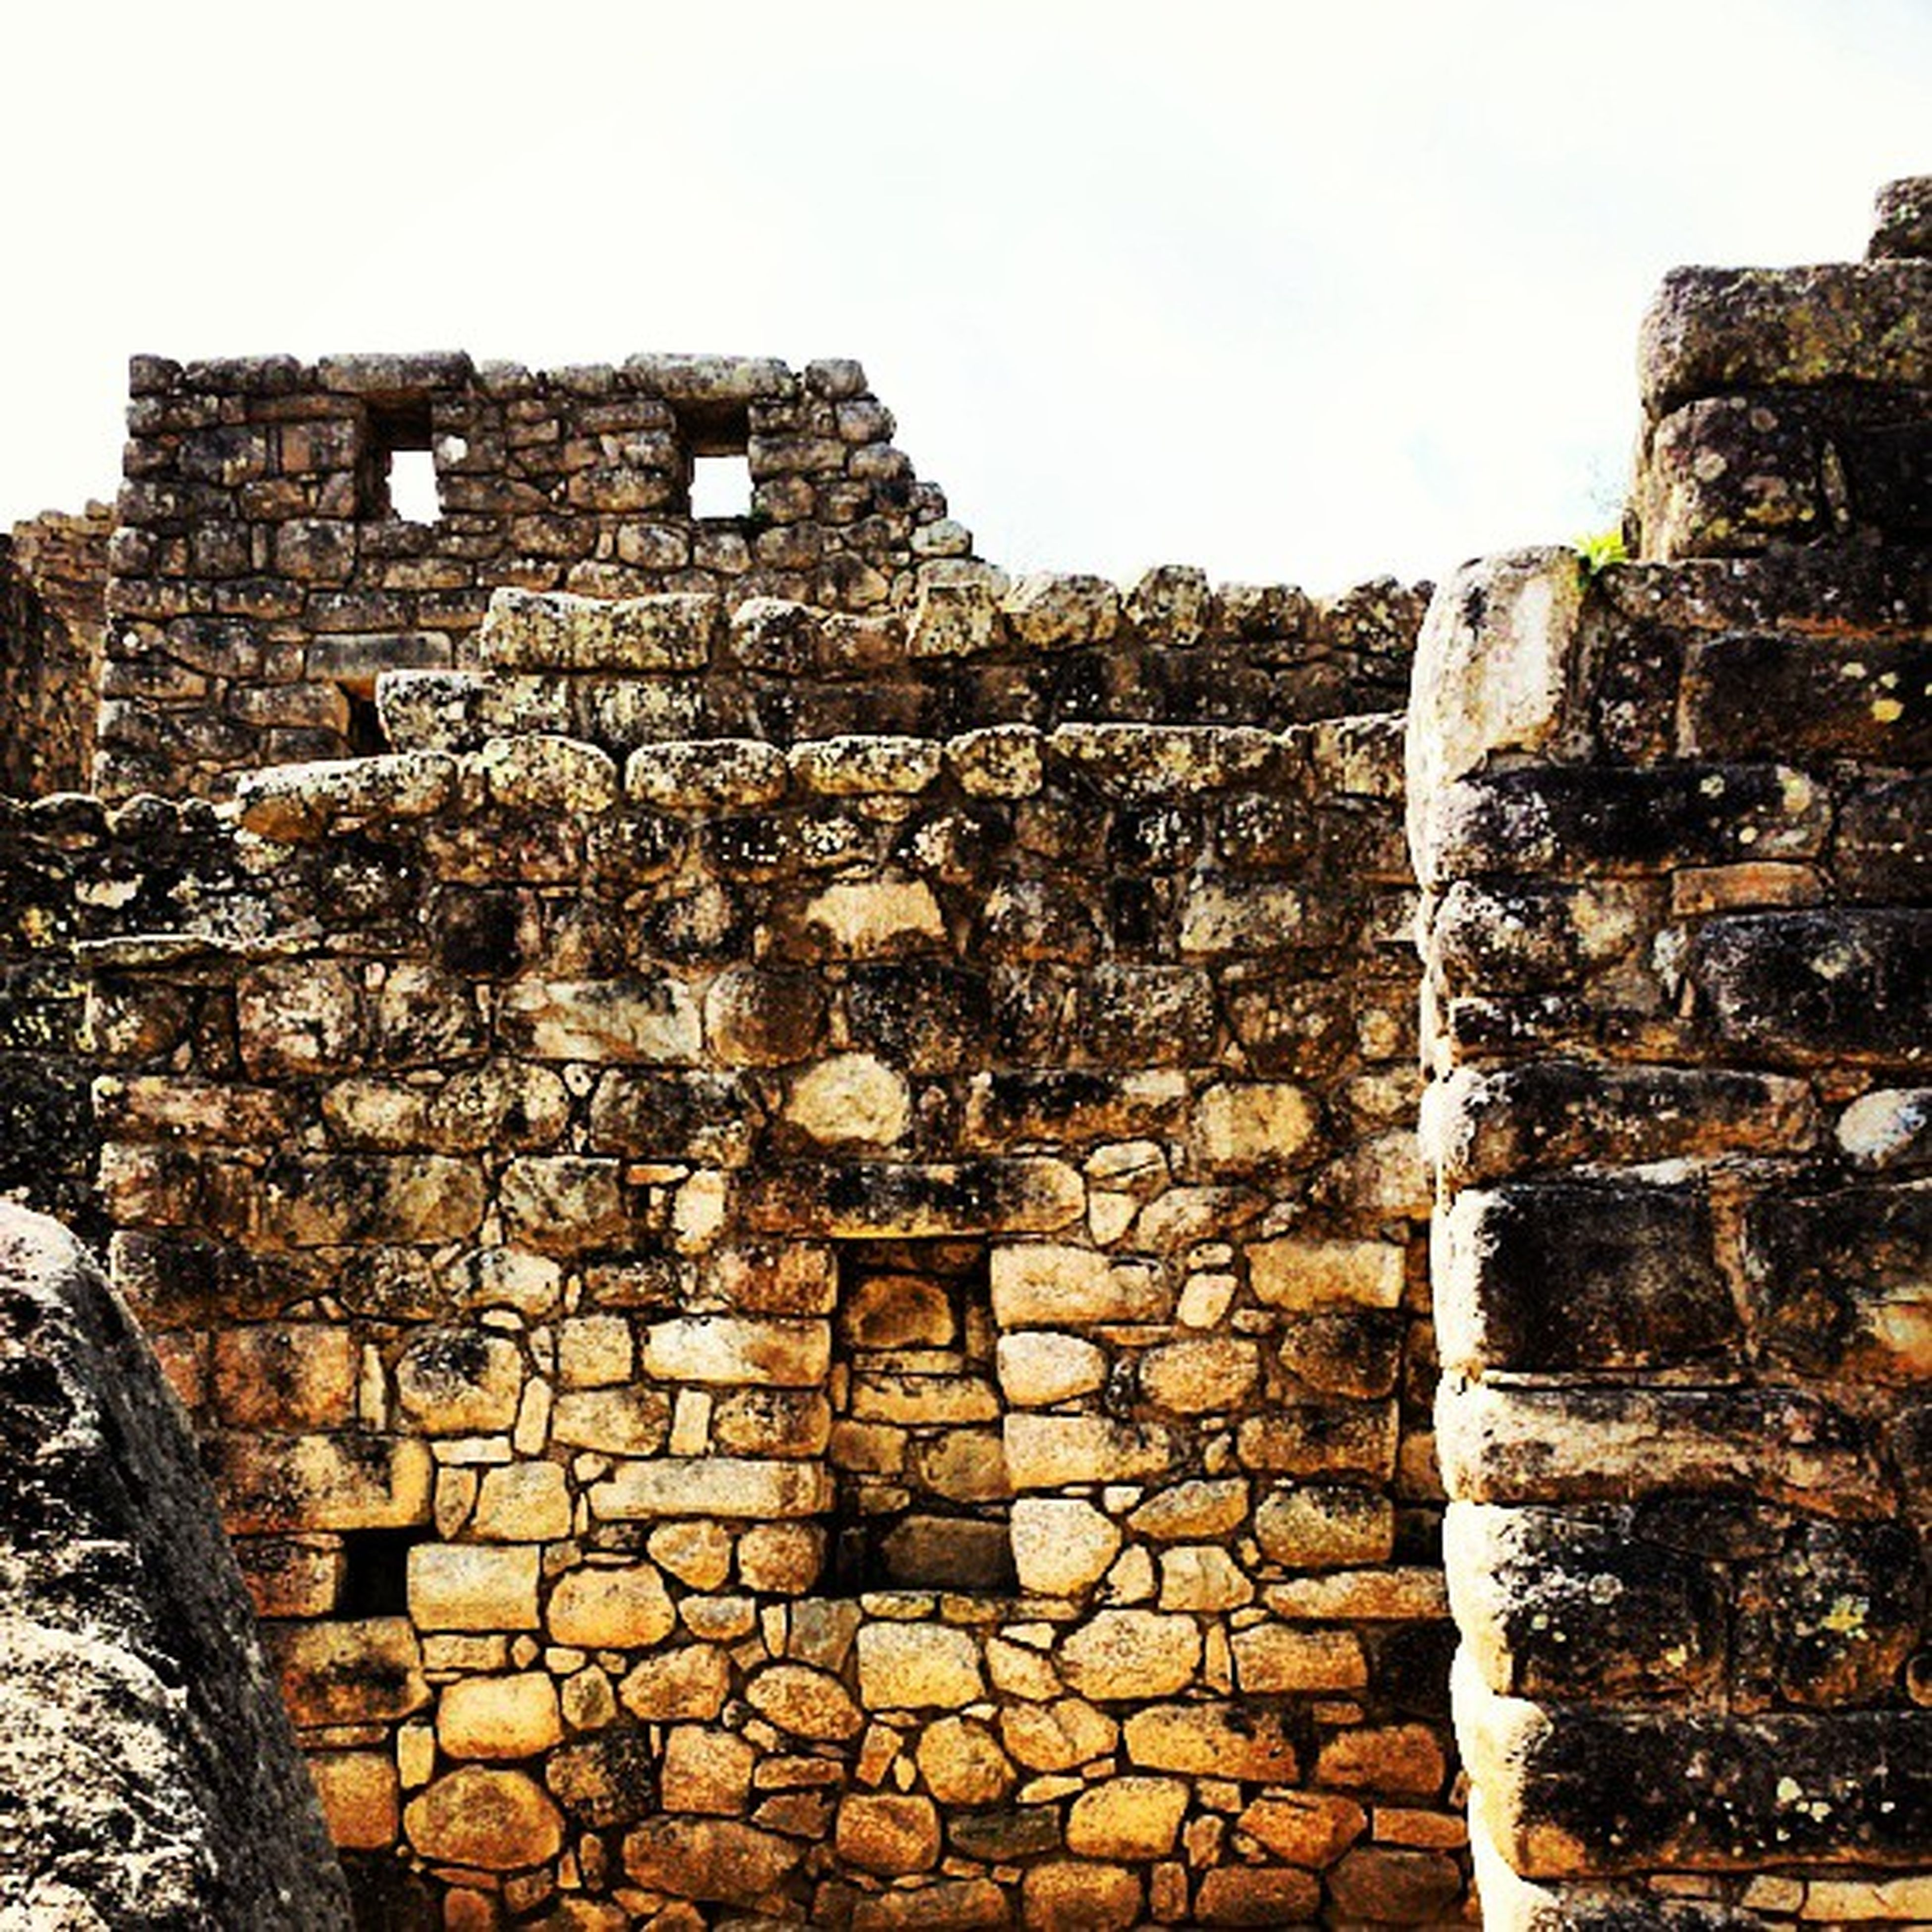 architecture, built structure, stone wall, building exterior, brick wall, old, wall - building feature, weathered, damaged, abandoned, history, old ruin, run-down, brick, obsolete, deterioration, clear sky, stone material, the past, low angle view